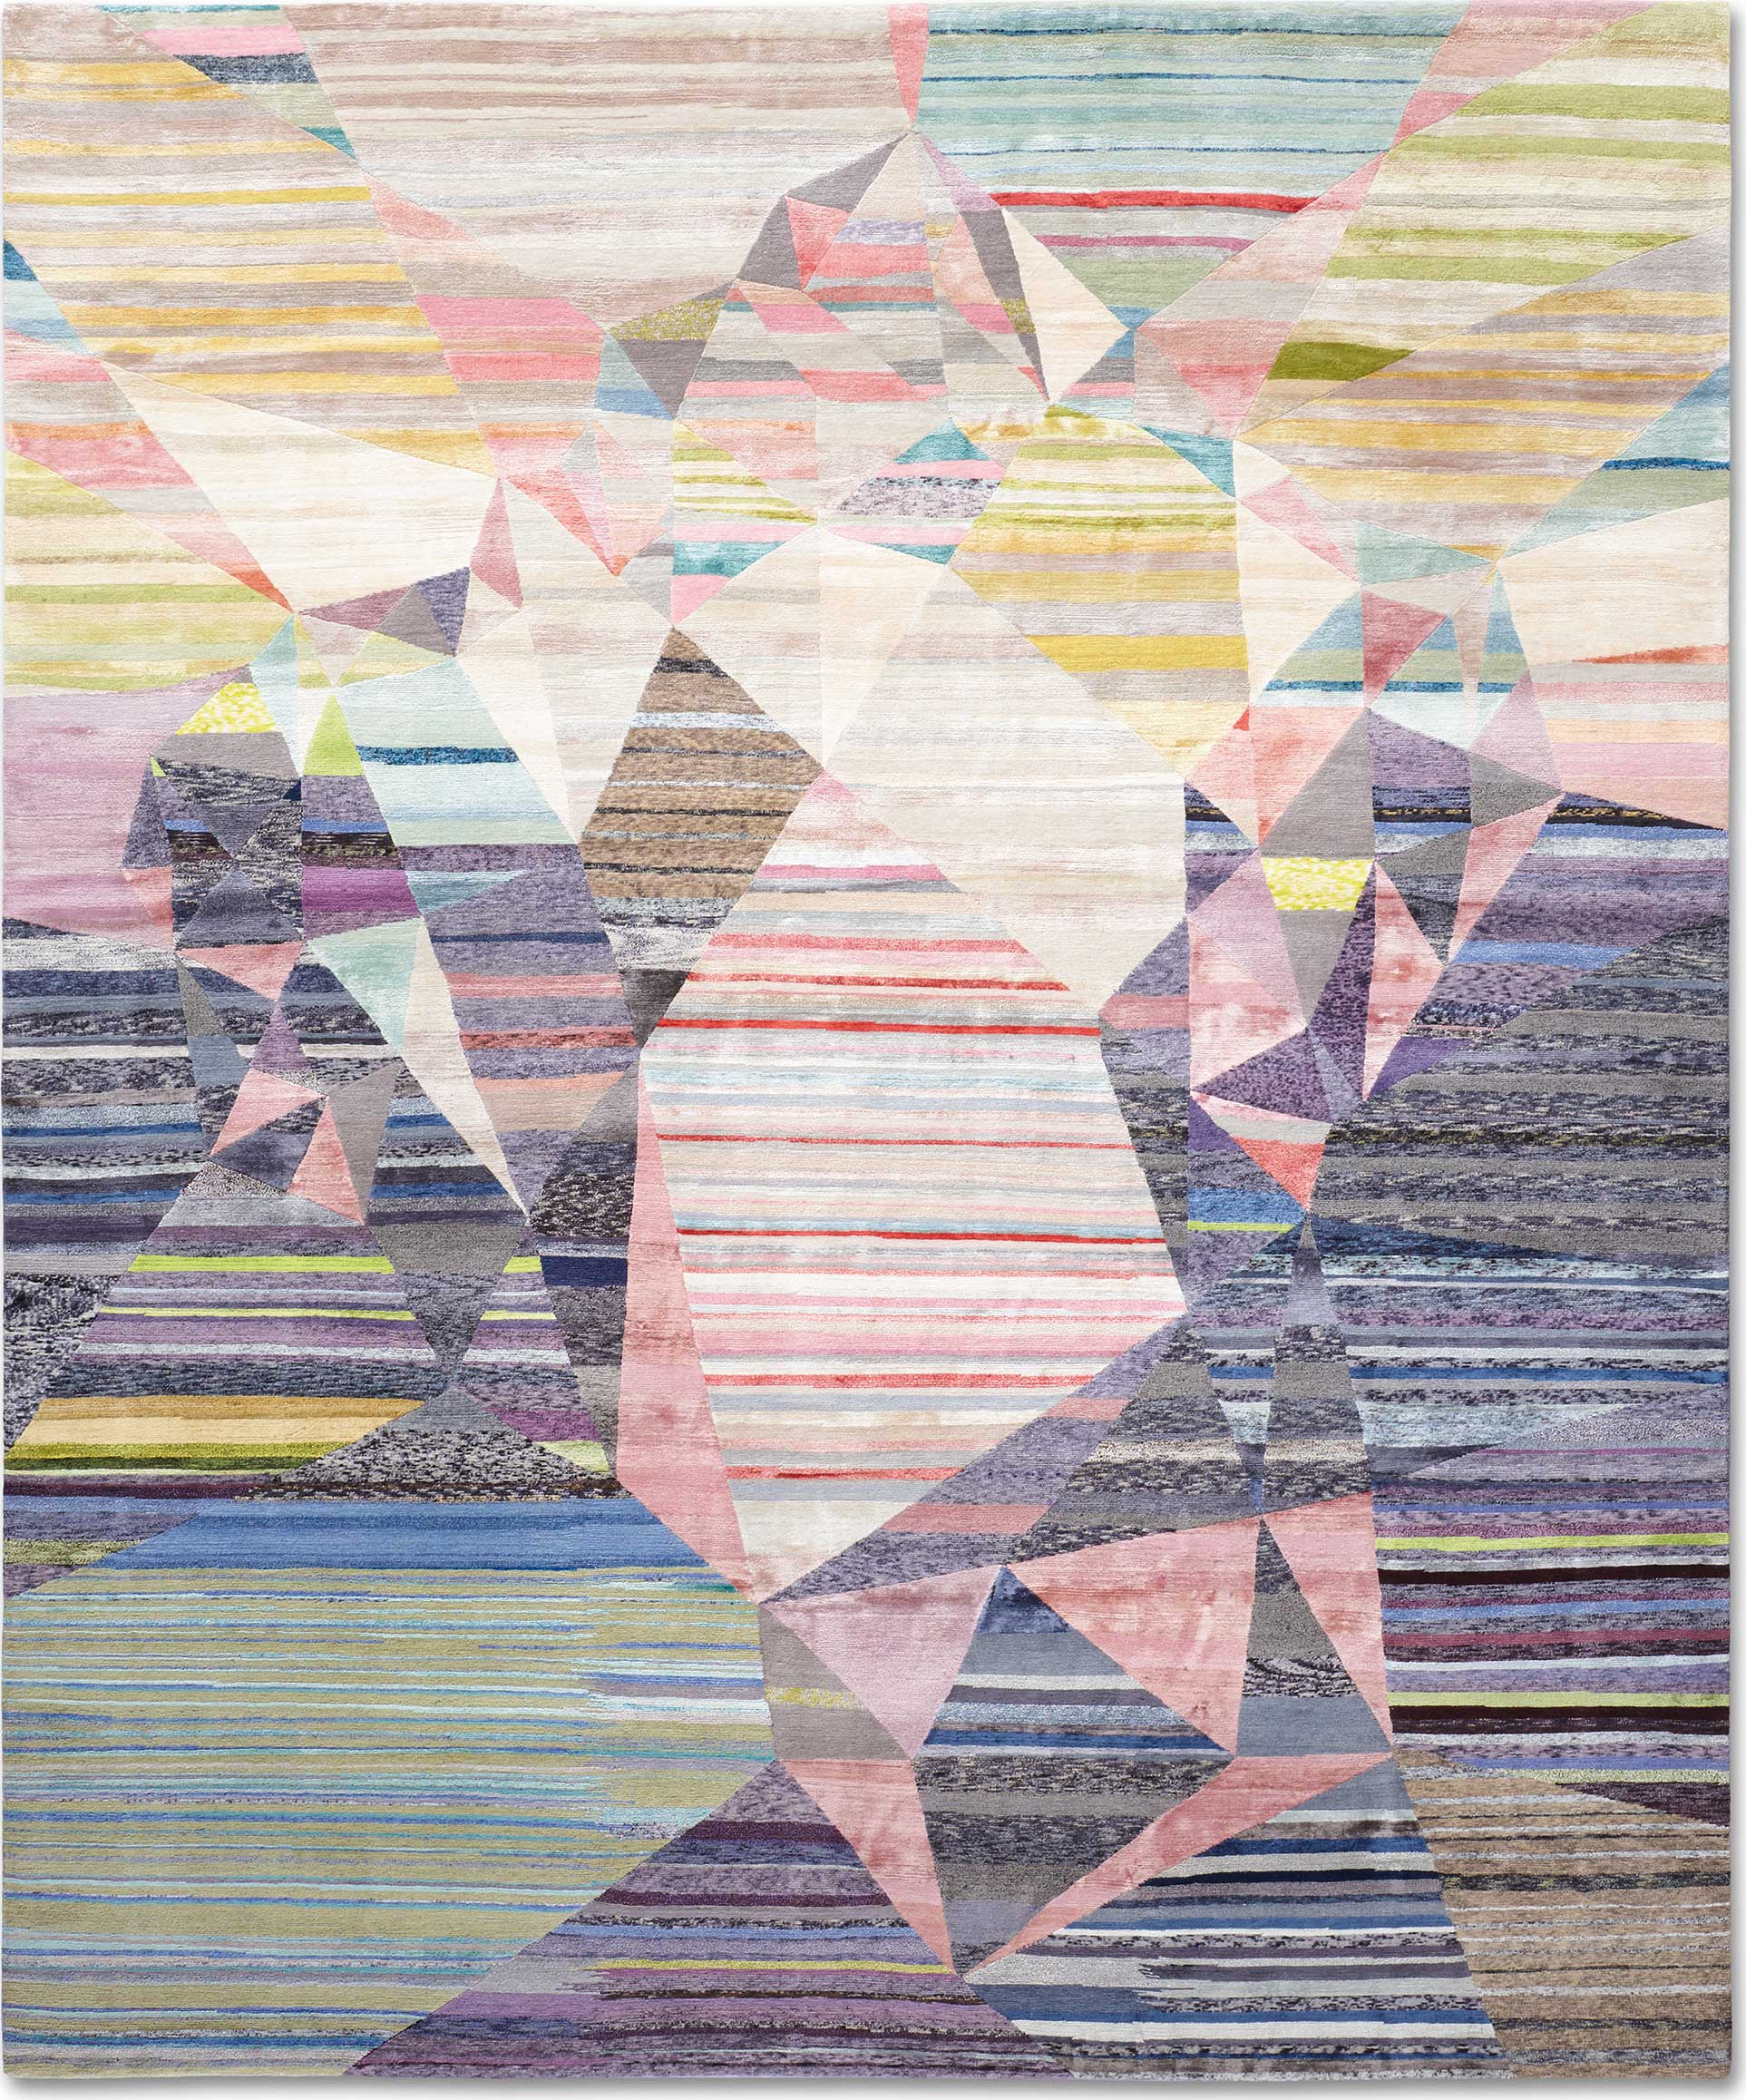 'Heart' by Rug Star by Jürgen Dahlmanns shown in their one-of-a-kind 'Eco' execution which utilizes surplus yarns from their ordinary production to create these extraordinarily unique versions of the firm's carpets. | Image courtesy of Rug Star by Jürgen Dahlmanns.